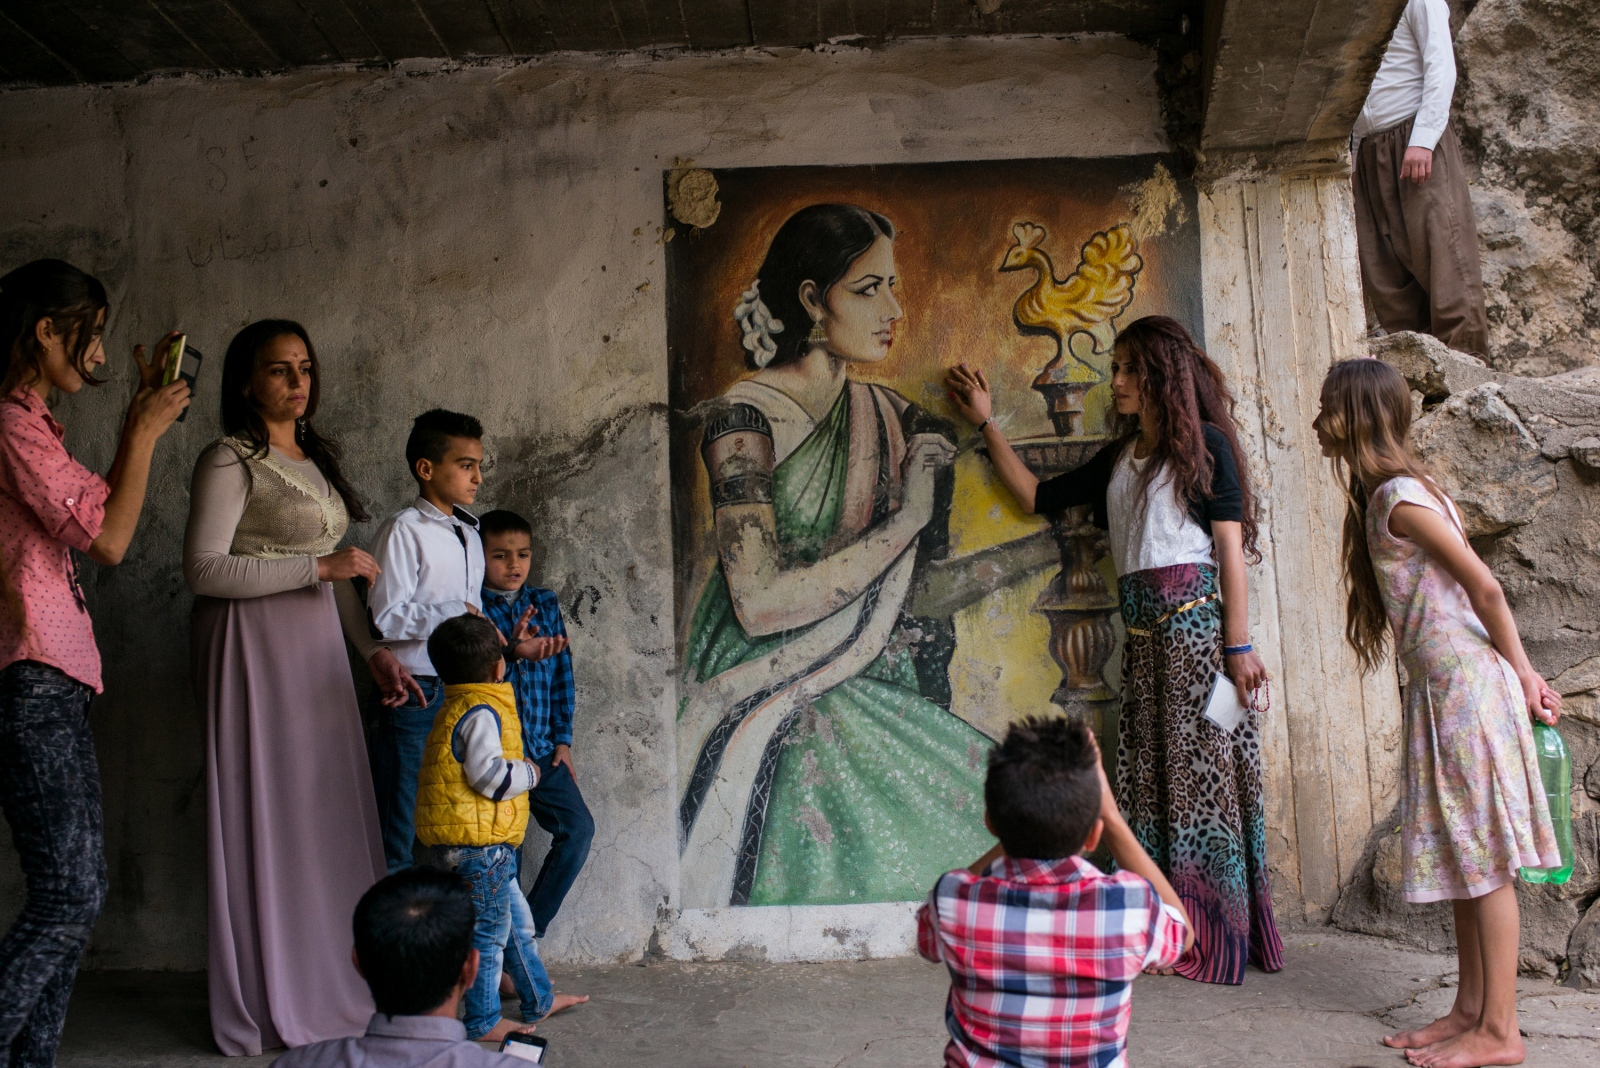 Visitors take pictures by the mural of the Peacock Angel at the temple in Lalish, Iraqi Kurdistan on November 11, 2016.